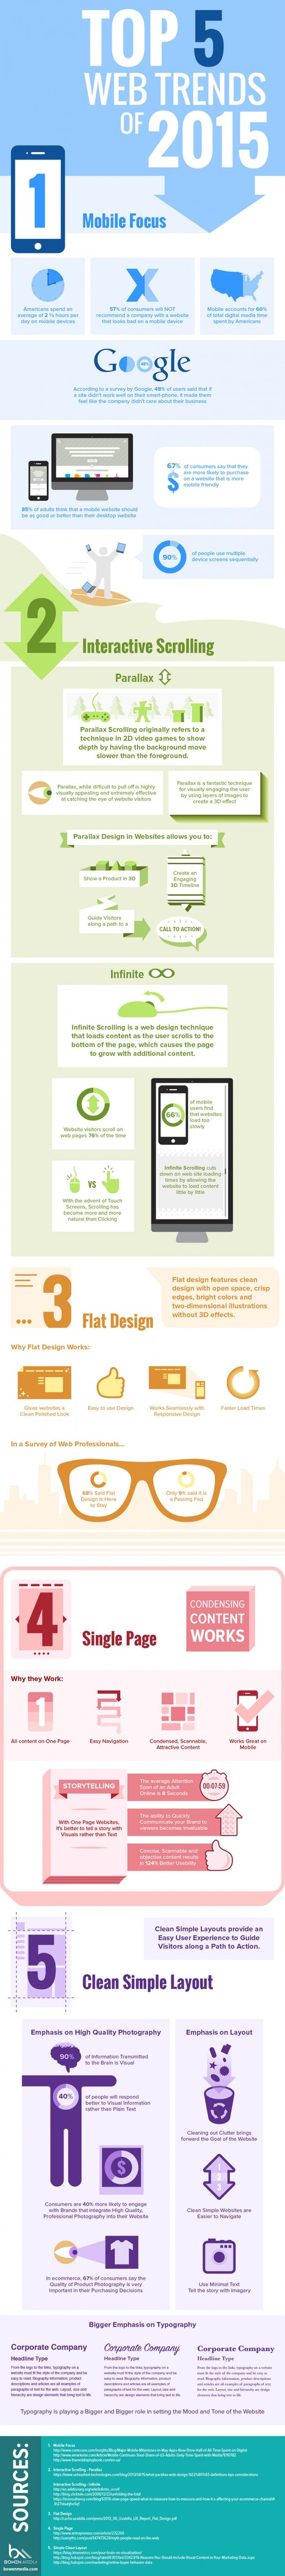 Top 5 Web Design Trends For 2015 | Infographic | language and technology | Scoop.it